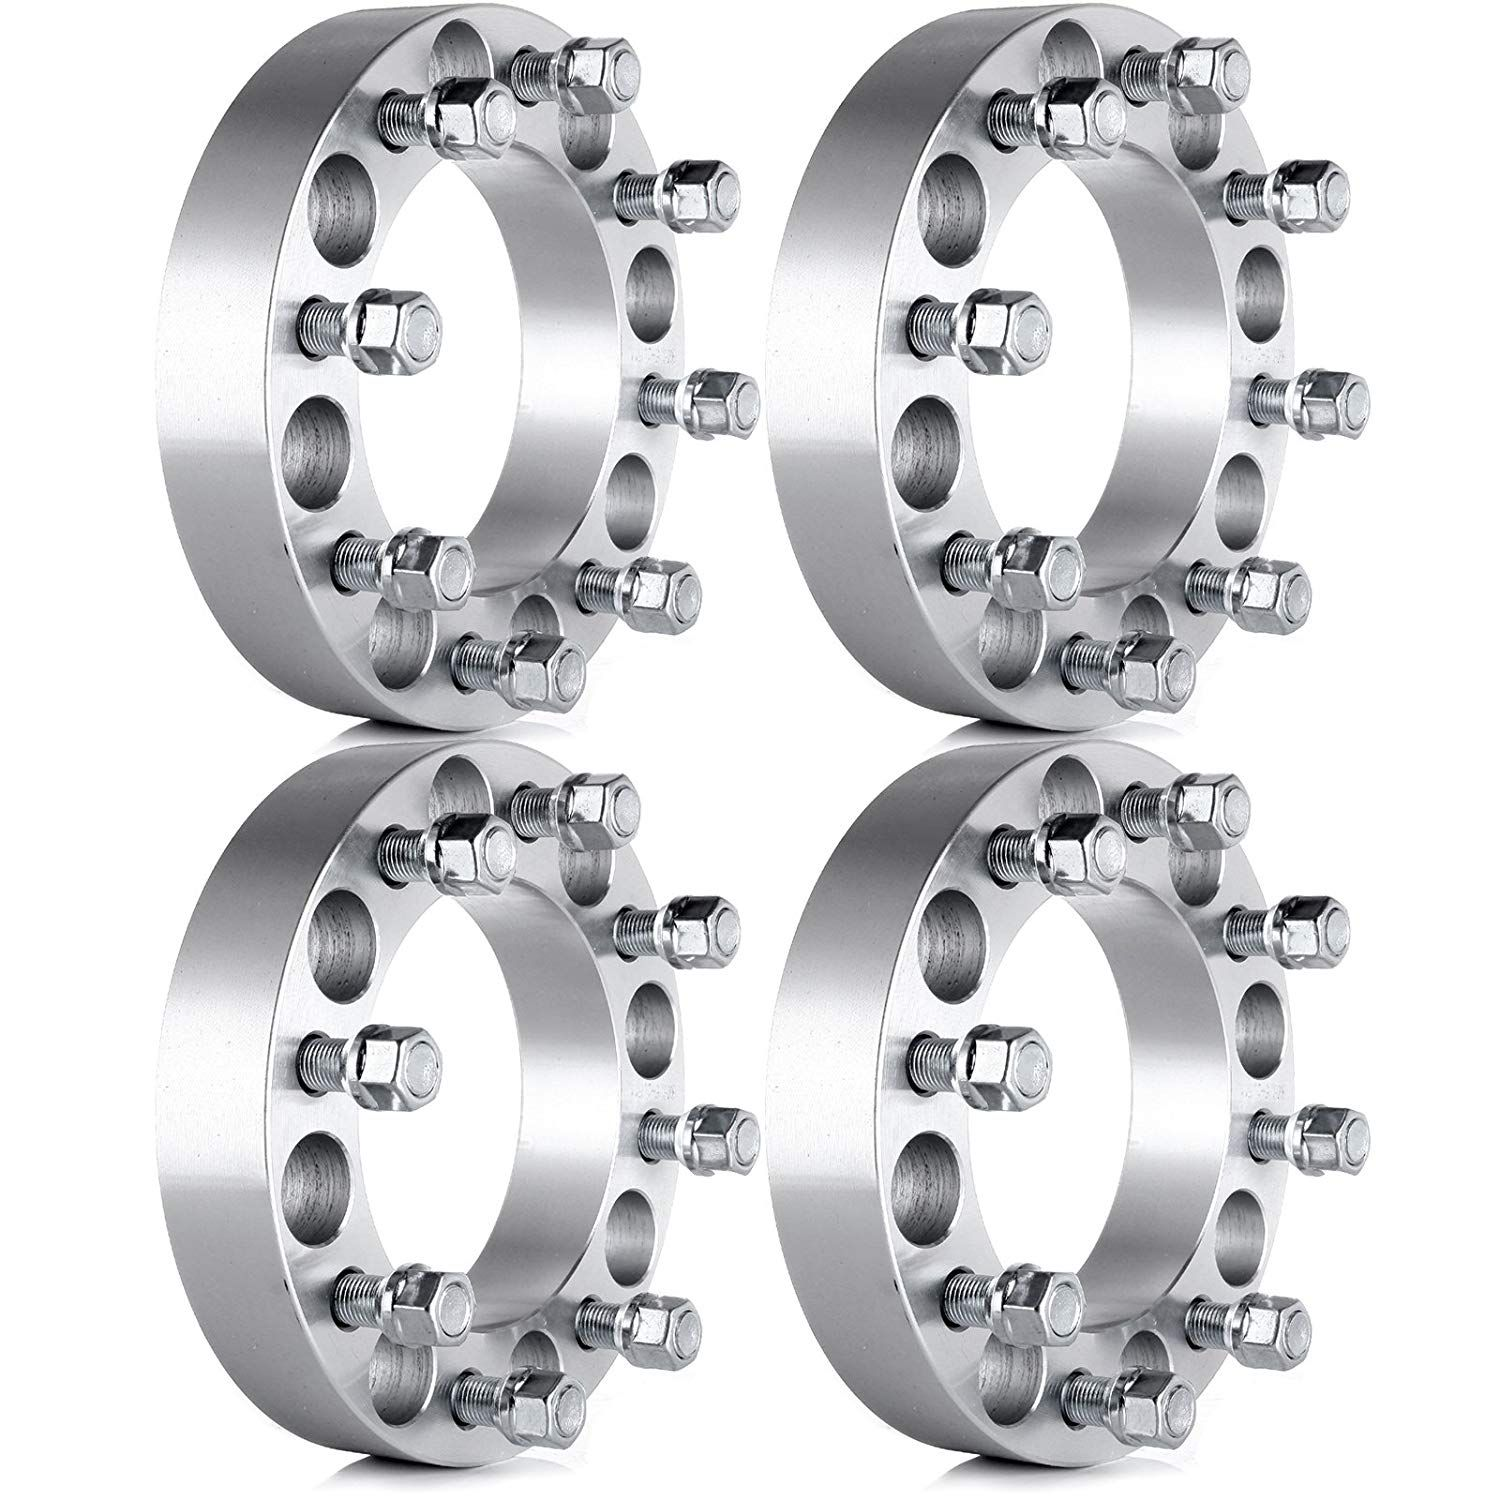 Eccpp Wheel Spacers Wheel Spacer Adapters 4x 1 5 8x6 5 To 8x6 5 8x165 1 Mm For 99 10 Chevy Silverado Gmc Sier Gmc Sierra Chevy Silverado 2010 Chevy Silverado